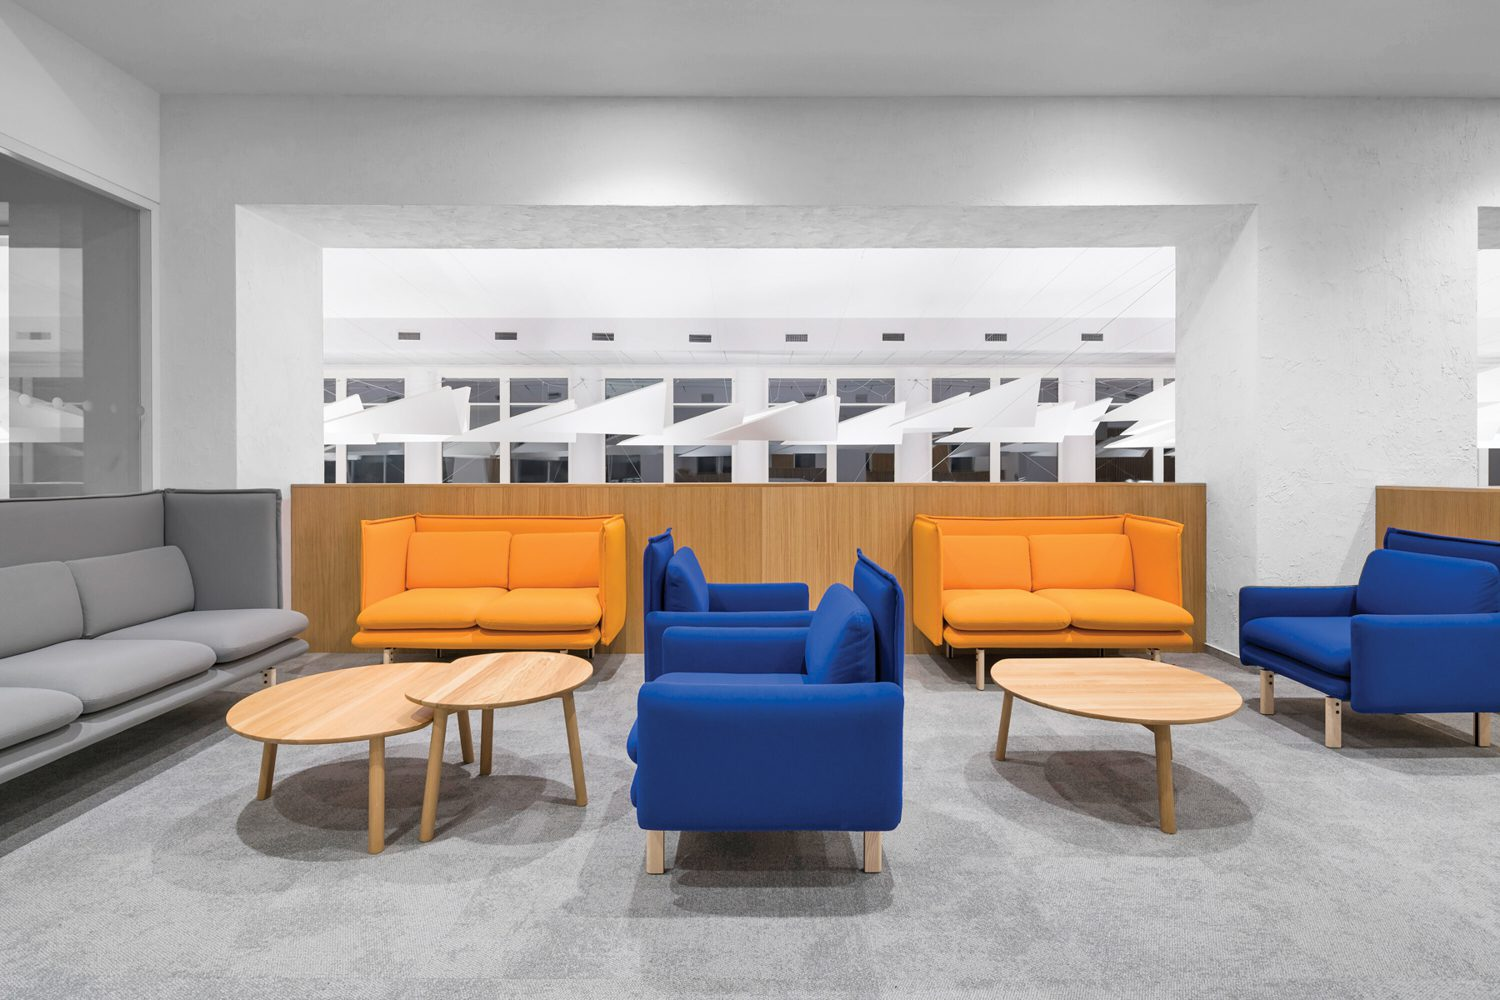 Yellow and blue seating in a lounge area.